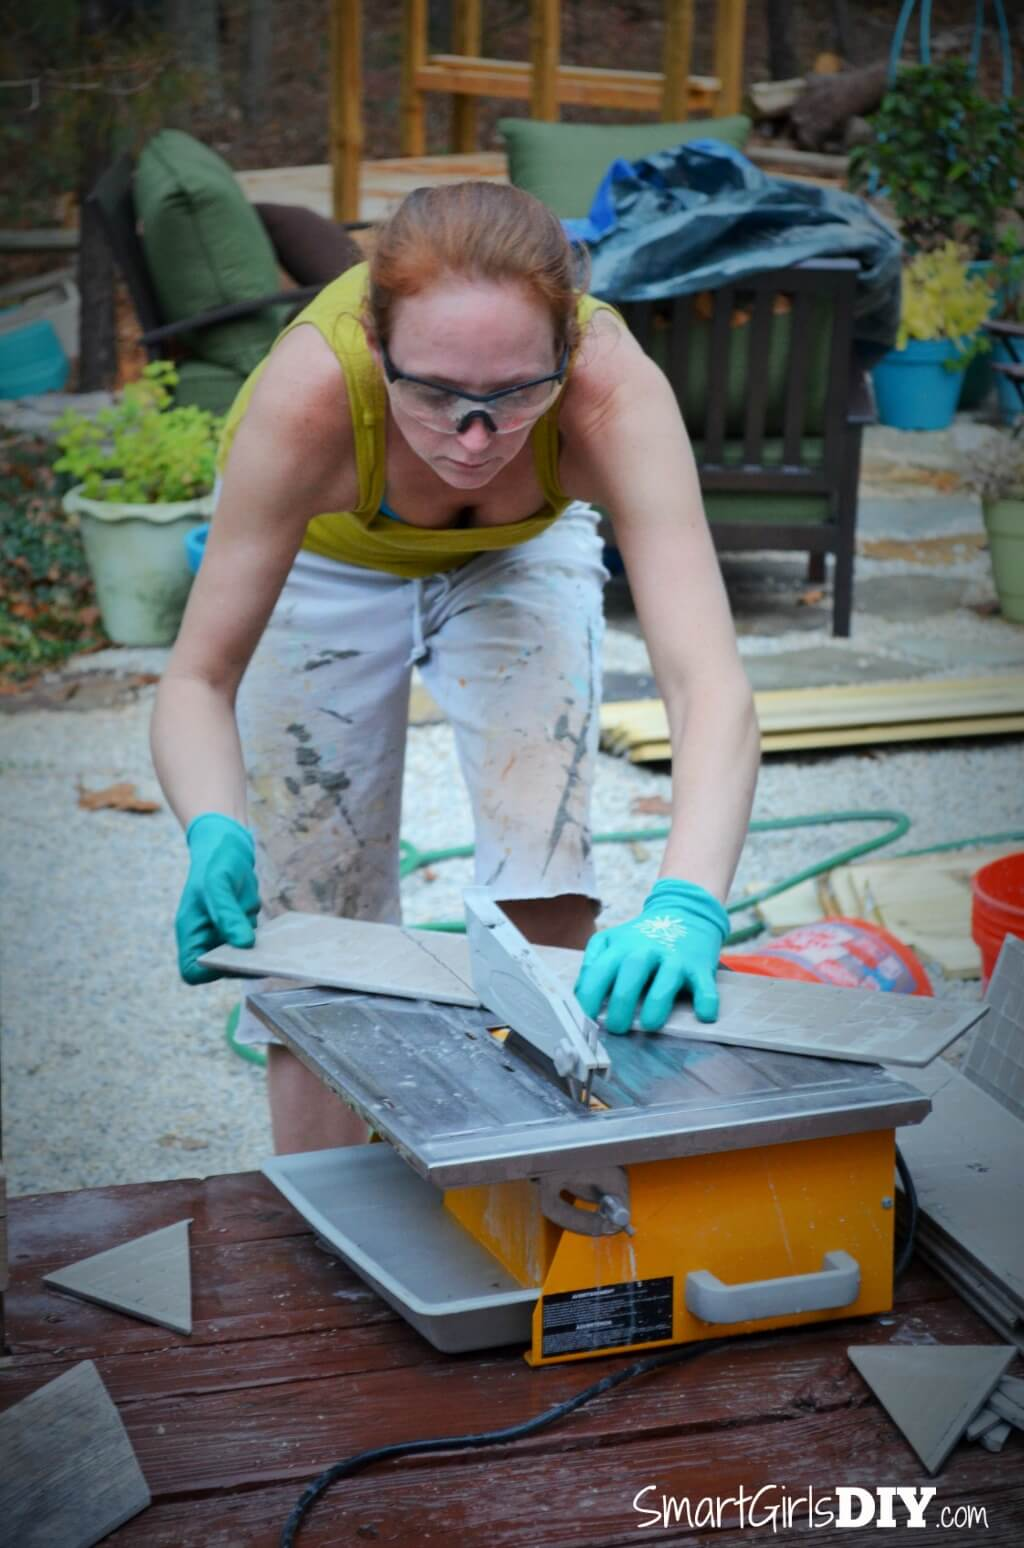 Using a tile saw